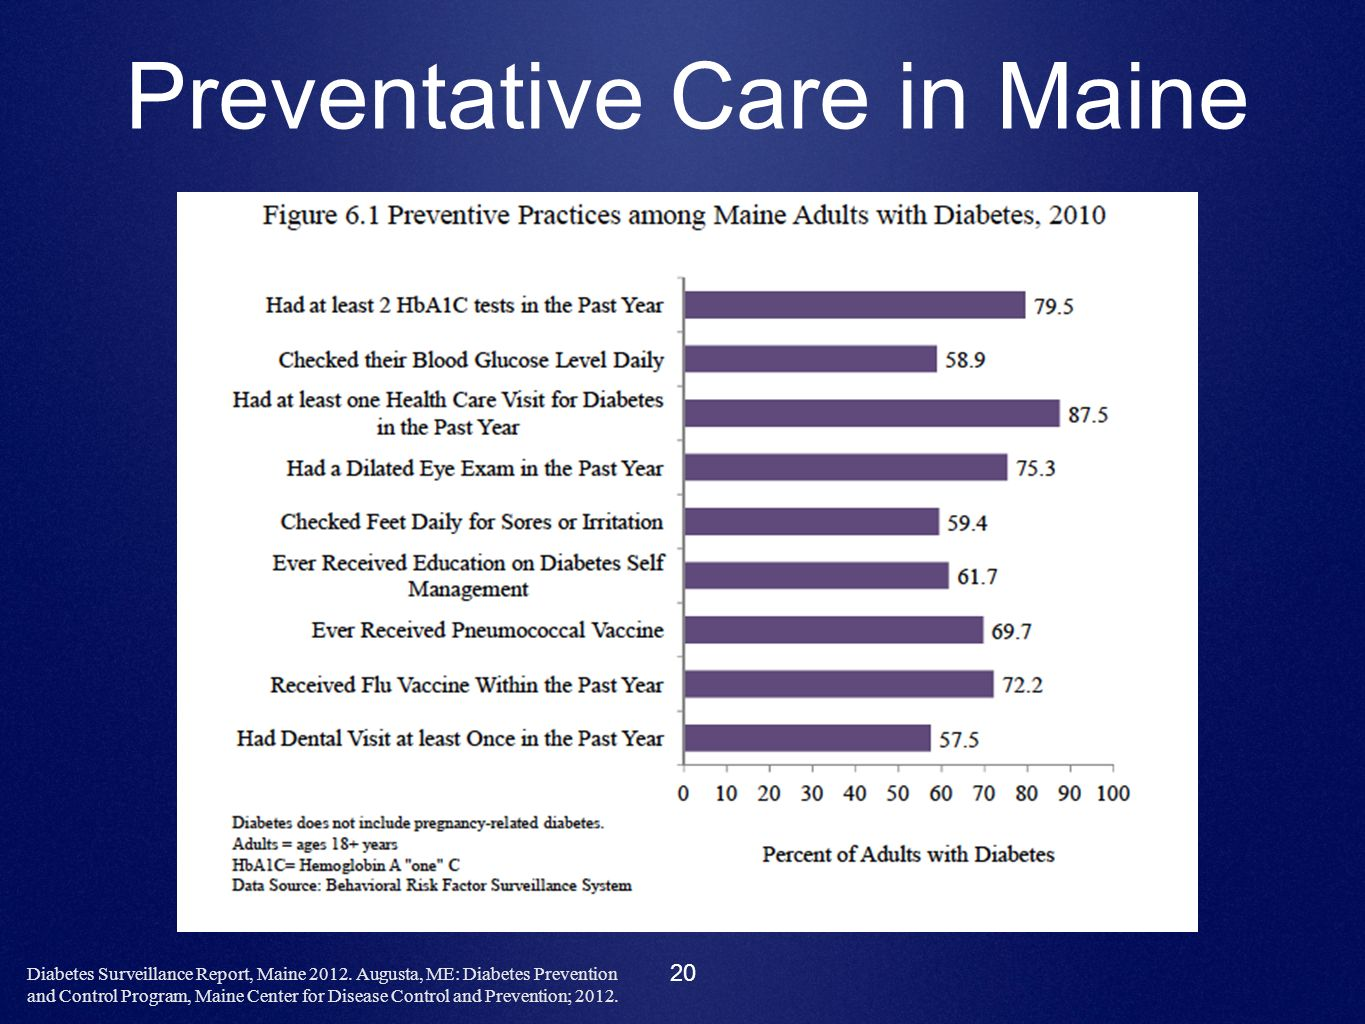 Preventative Care in Maine